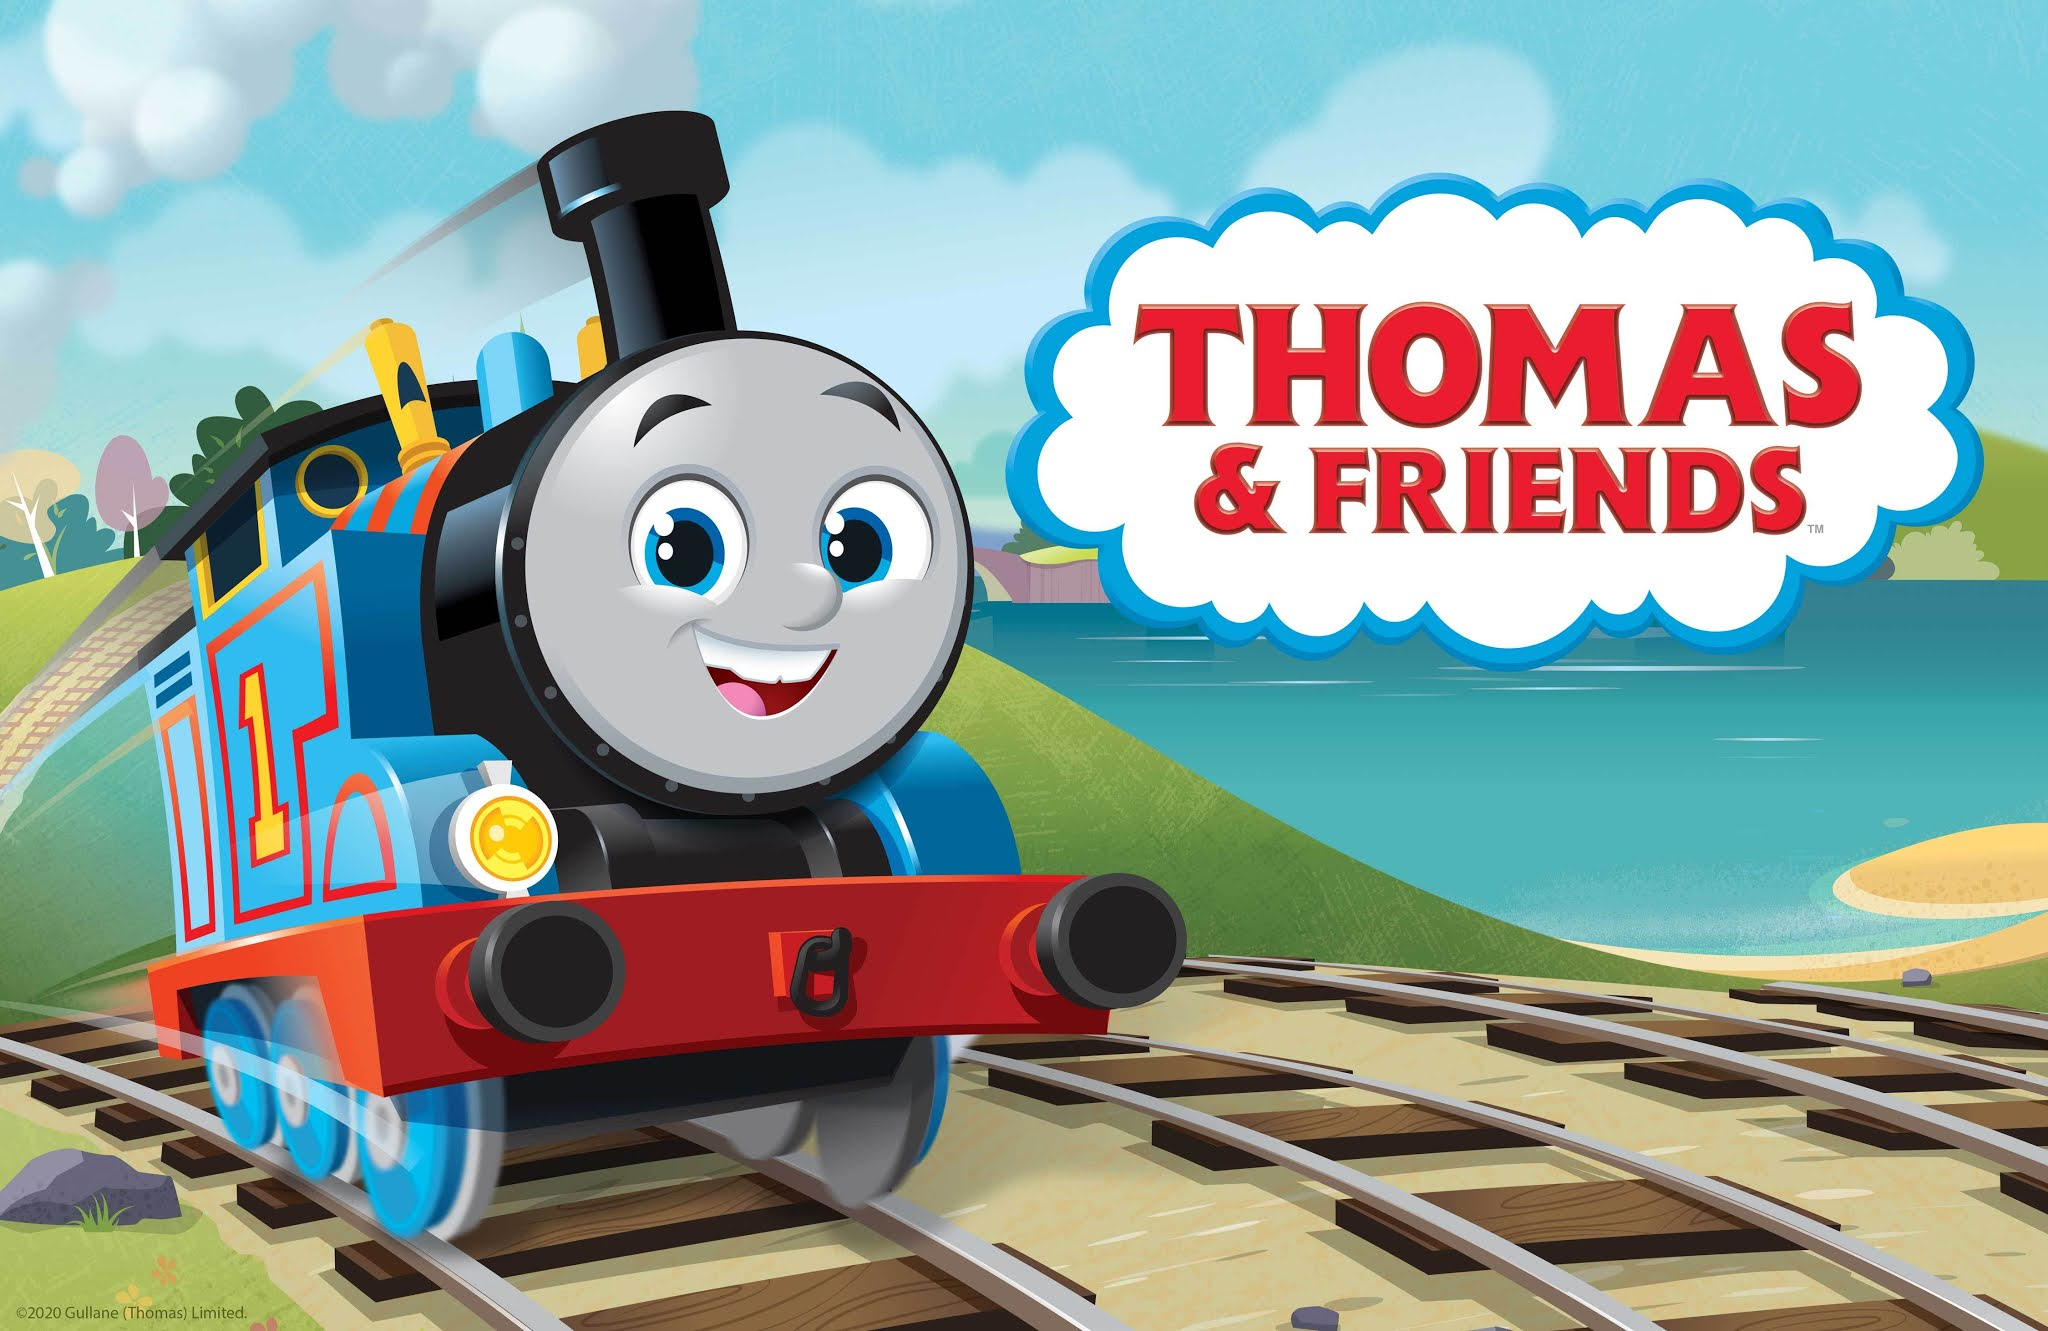 THE SiF BLOG: Thomas 2021 - What To Expect